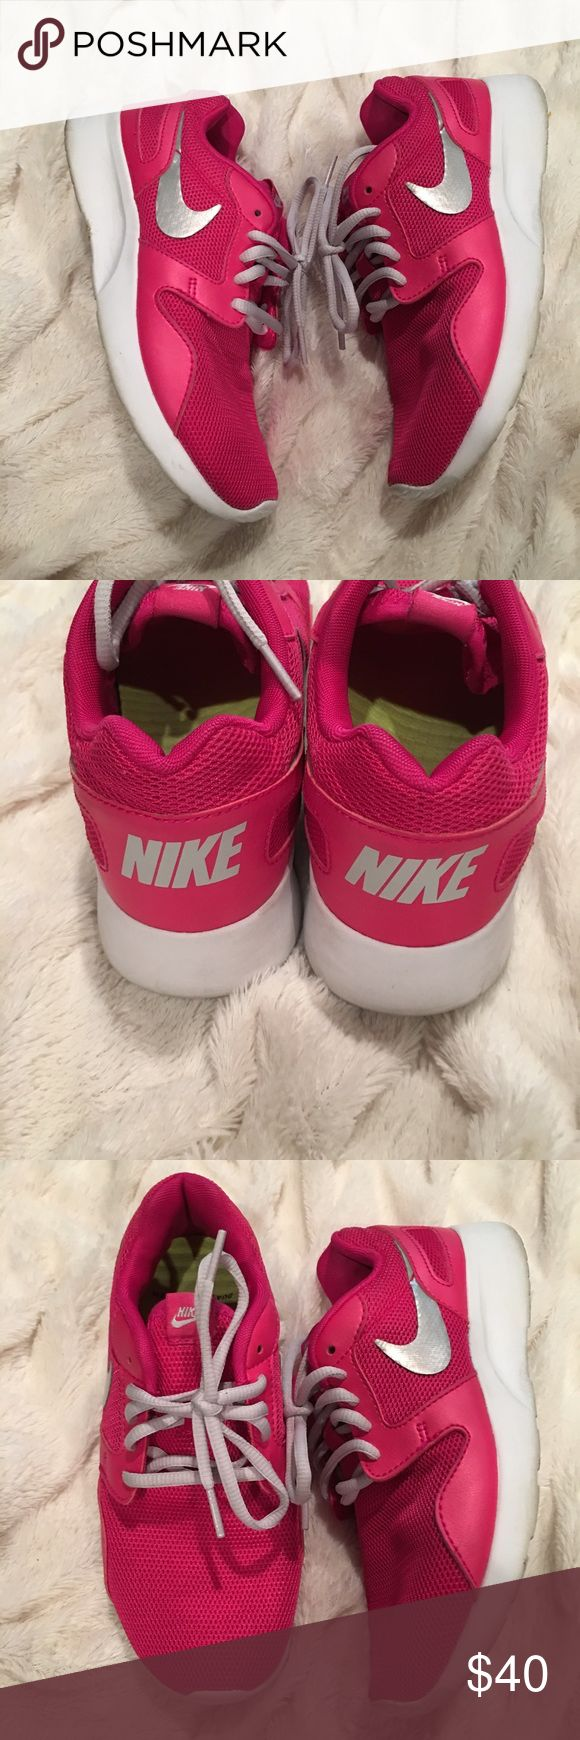 Nike Roshe Run Women's Shoe Size 6 Neon Pink Nike Roshe Run Women's Shoe Size 6 Neon Pink, Gray Nike Sign youth 4 Shoes Sneakers